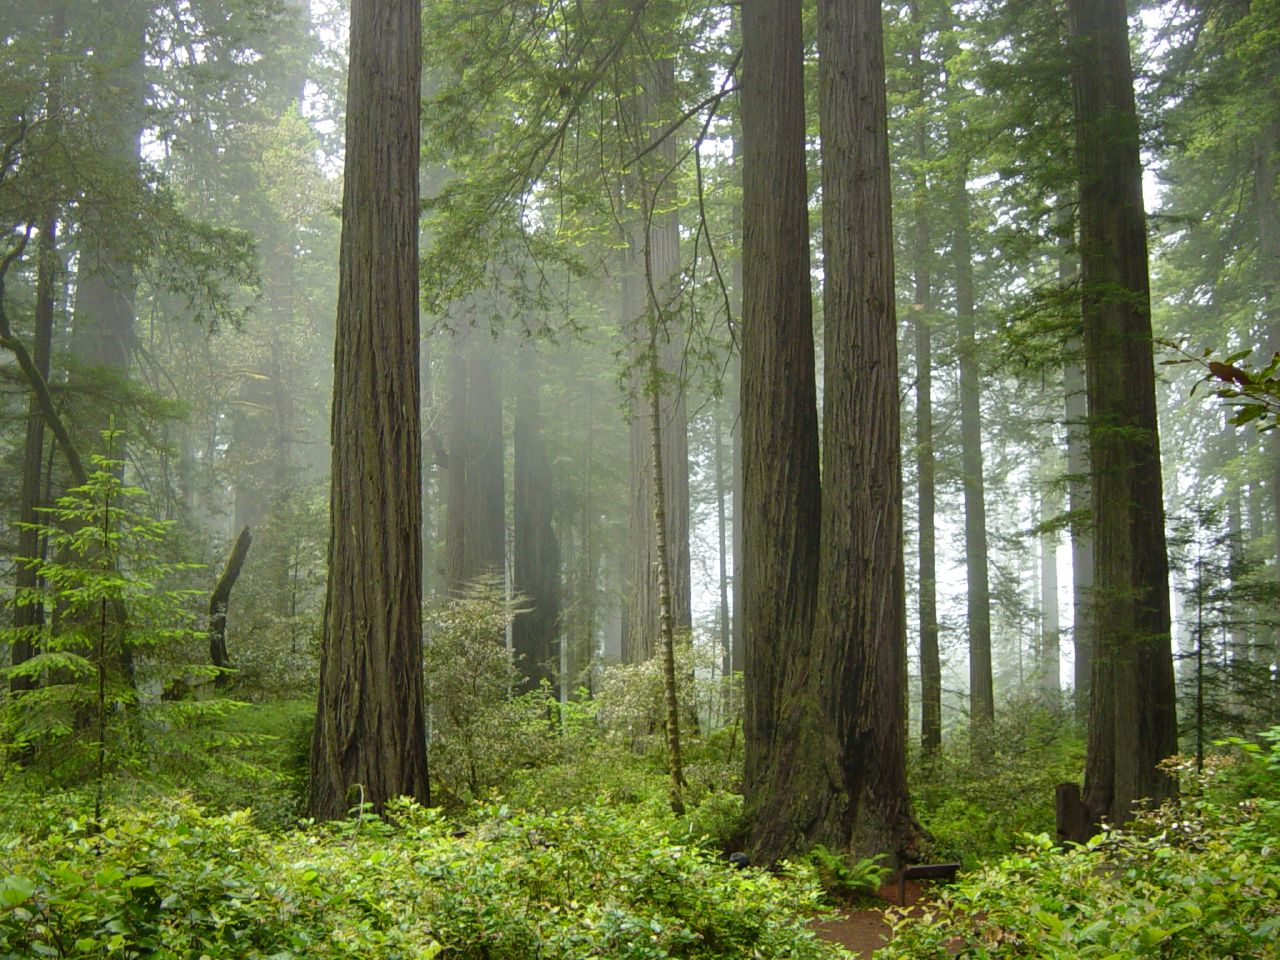 Redwoods and fog in Redwood National Park. (Photo/Wikimedia-Michael Schweppe CC BY SA)